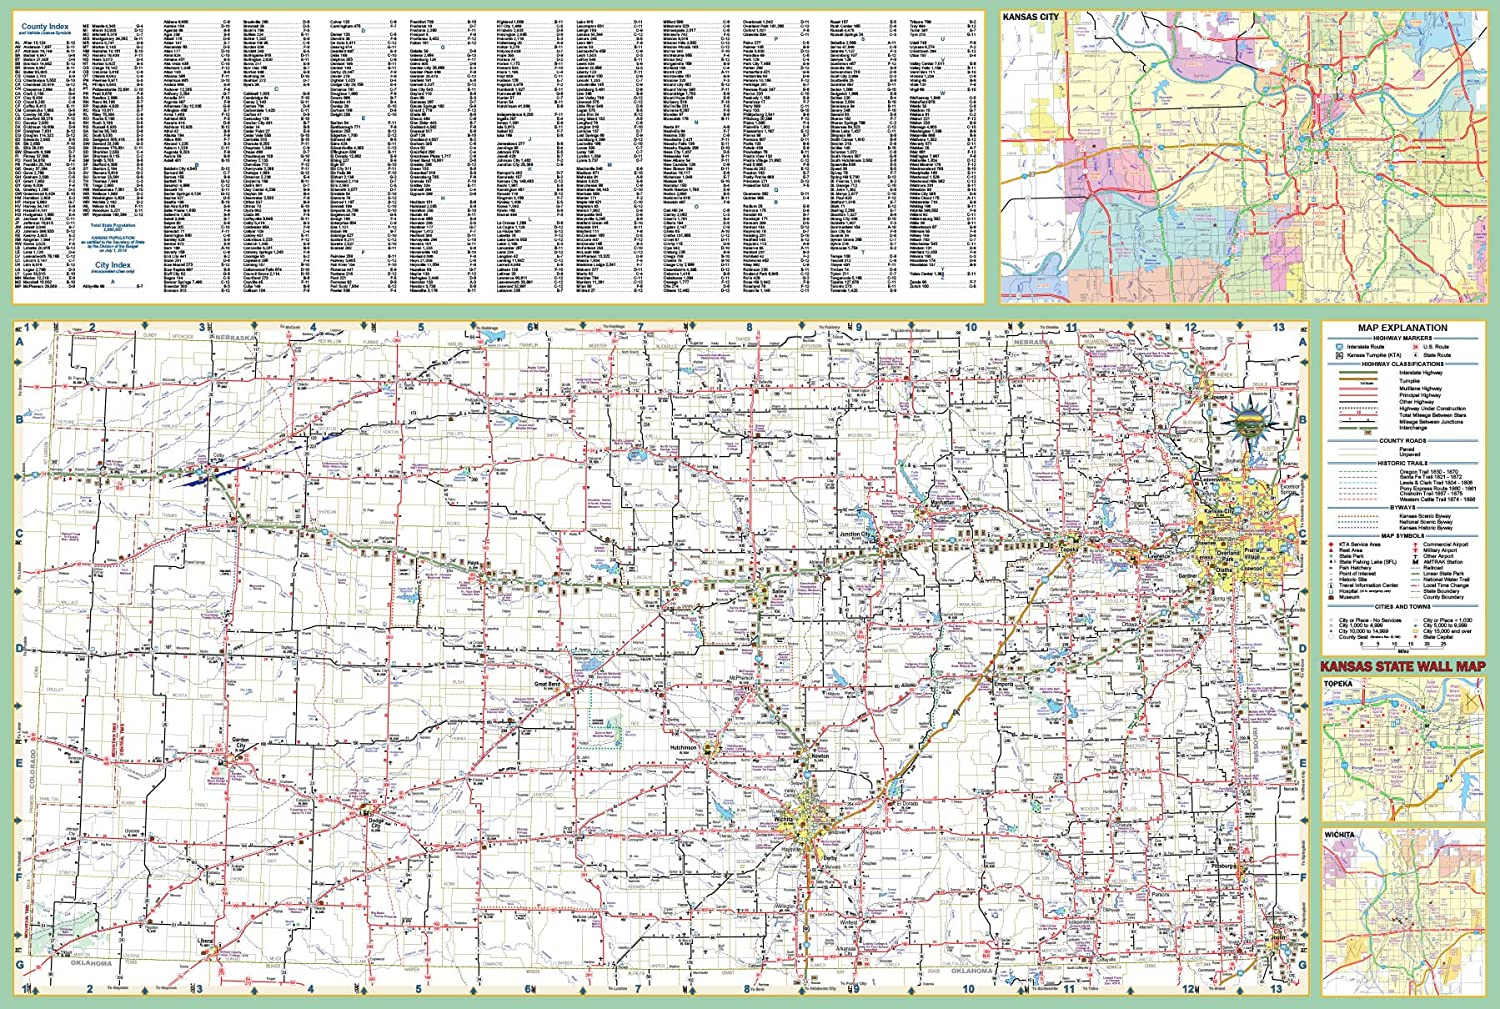 Kansas County Maps With Roads on kansas highway road map, kansas golf courses map, kansas major cities map airports, kansas ghost towns map, kansas highway 70 map, kansas interstate highways, kansas counties and towns, kansas state map, kansas map cities towns,